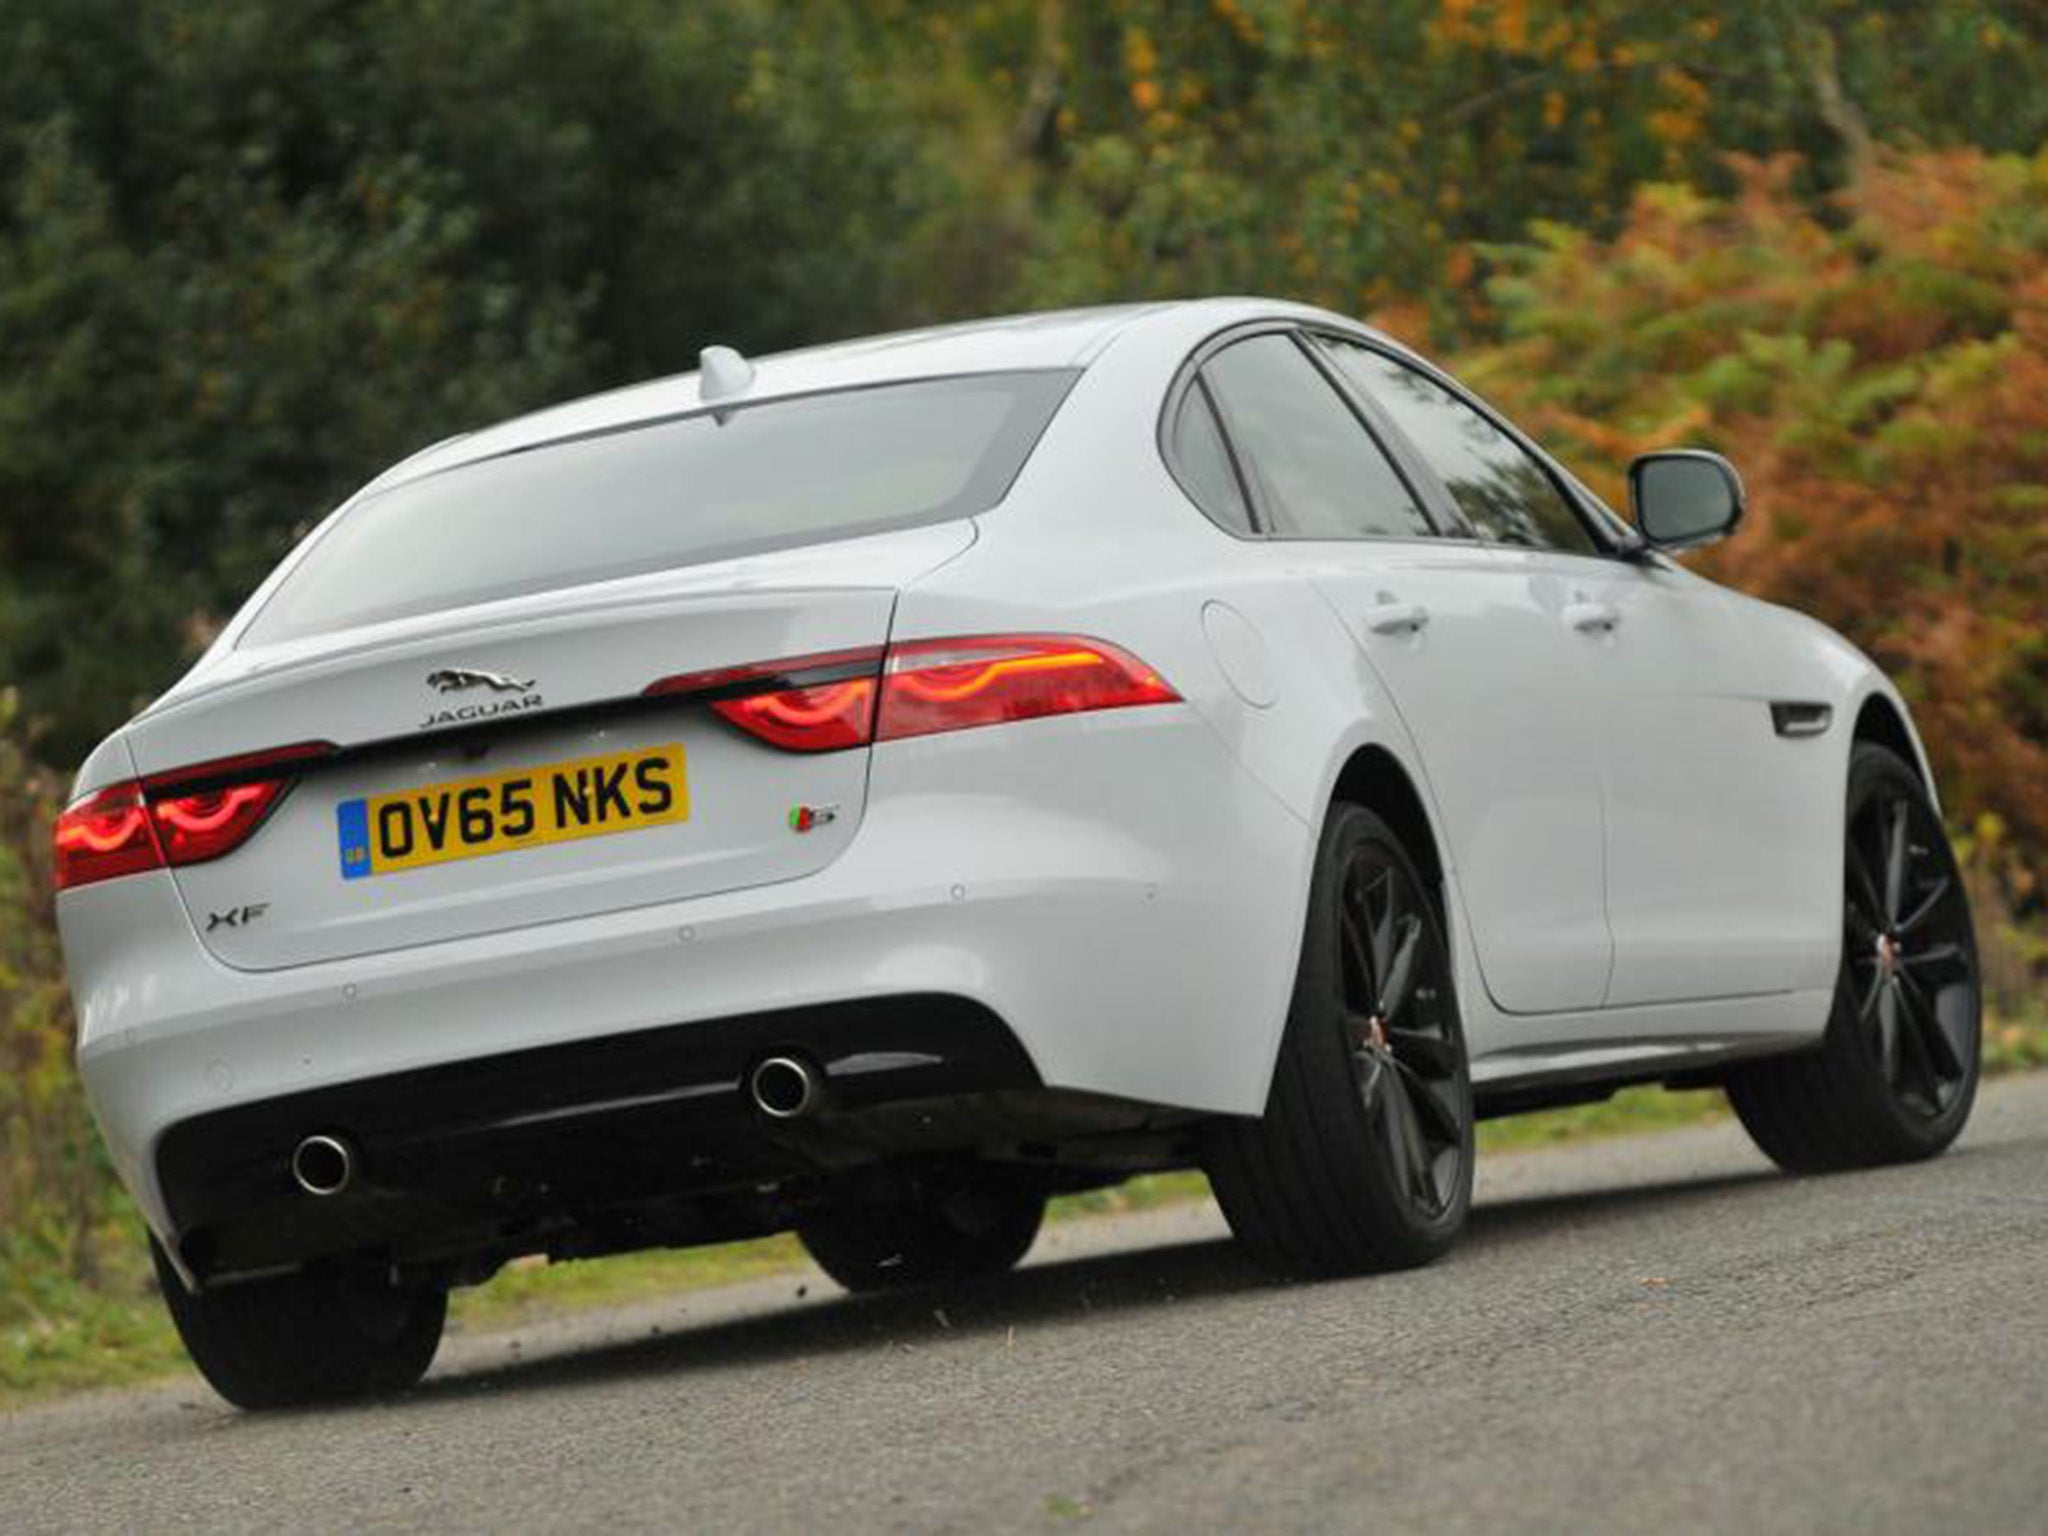 2015 Jaguar XF 3 0 TDV6 S UK car review The new exec proves itself